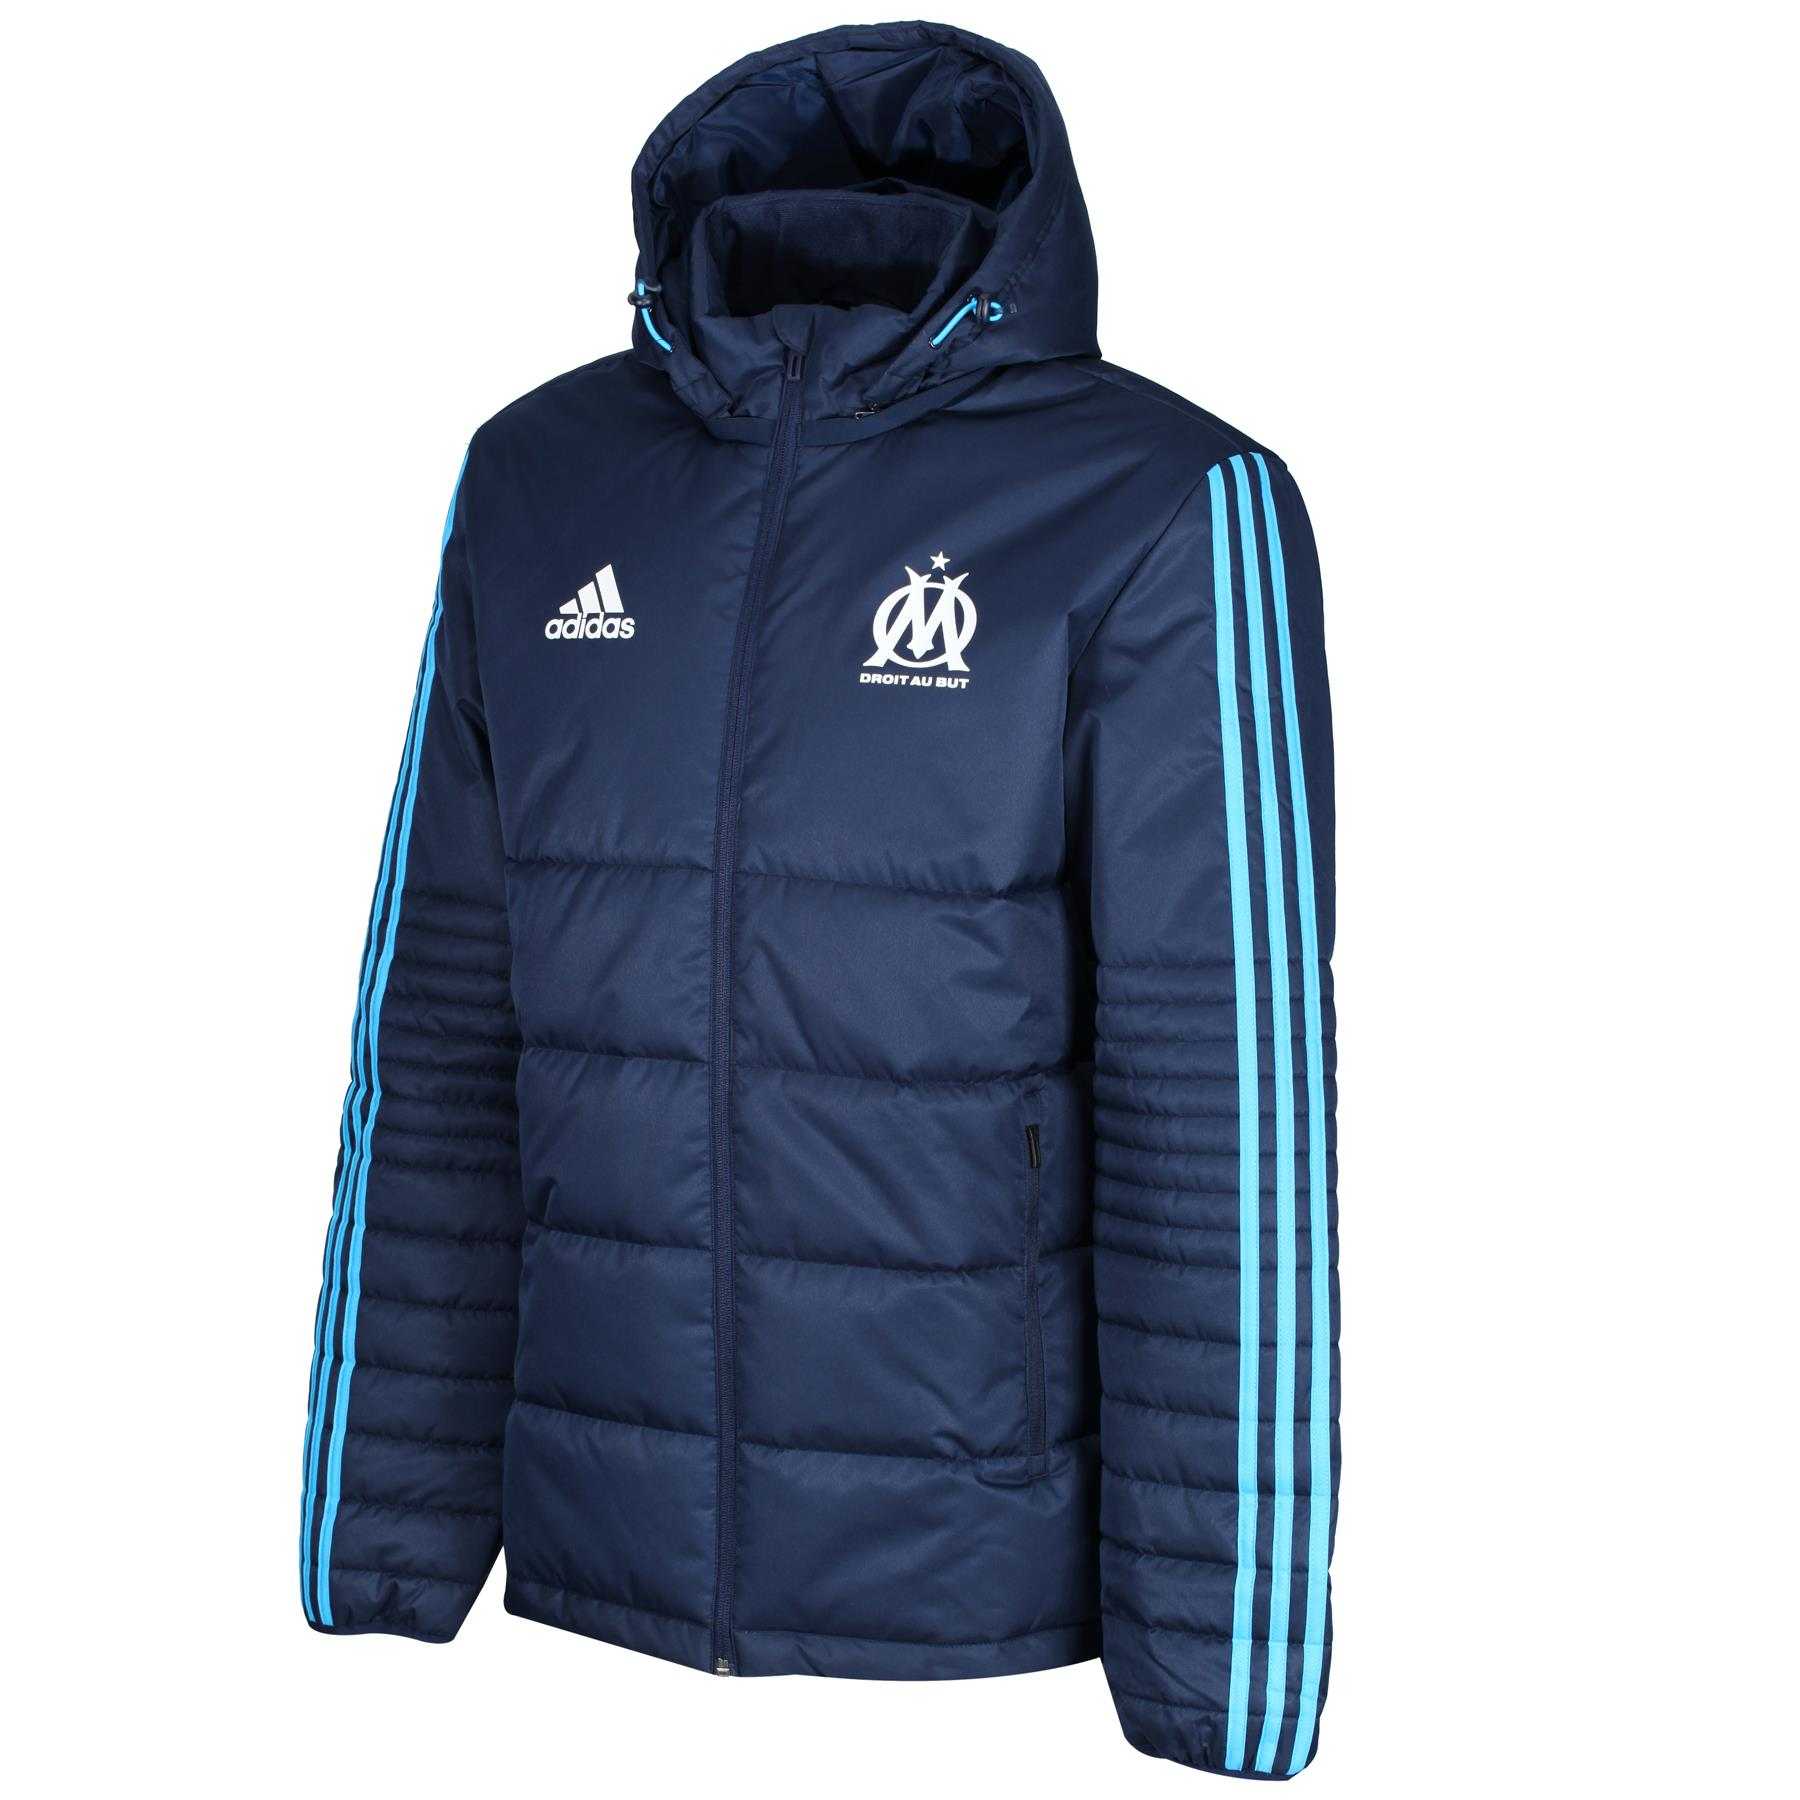 Details about adidas MEN'S OLYMPIQUE MARSEILLE PADDED JACKET COAT WARM COMFY FOOTBALL LIGUE 1